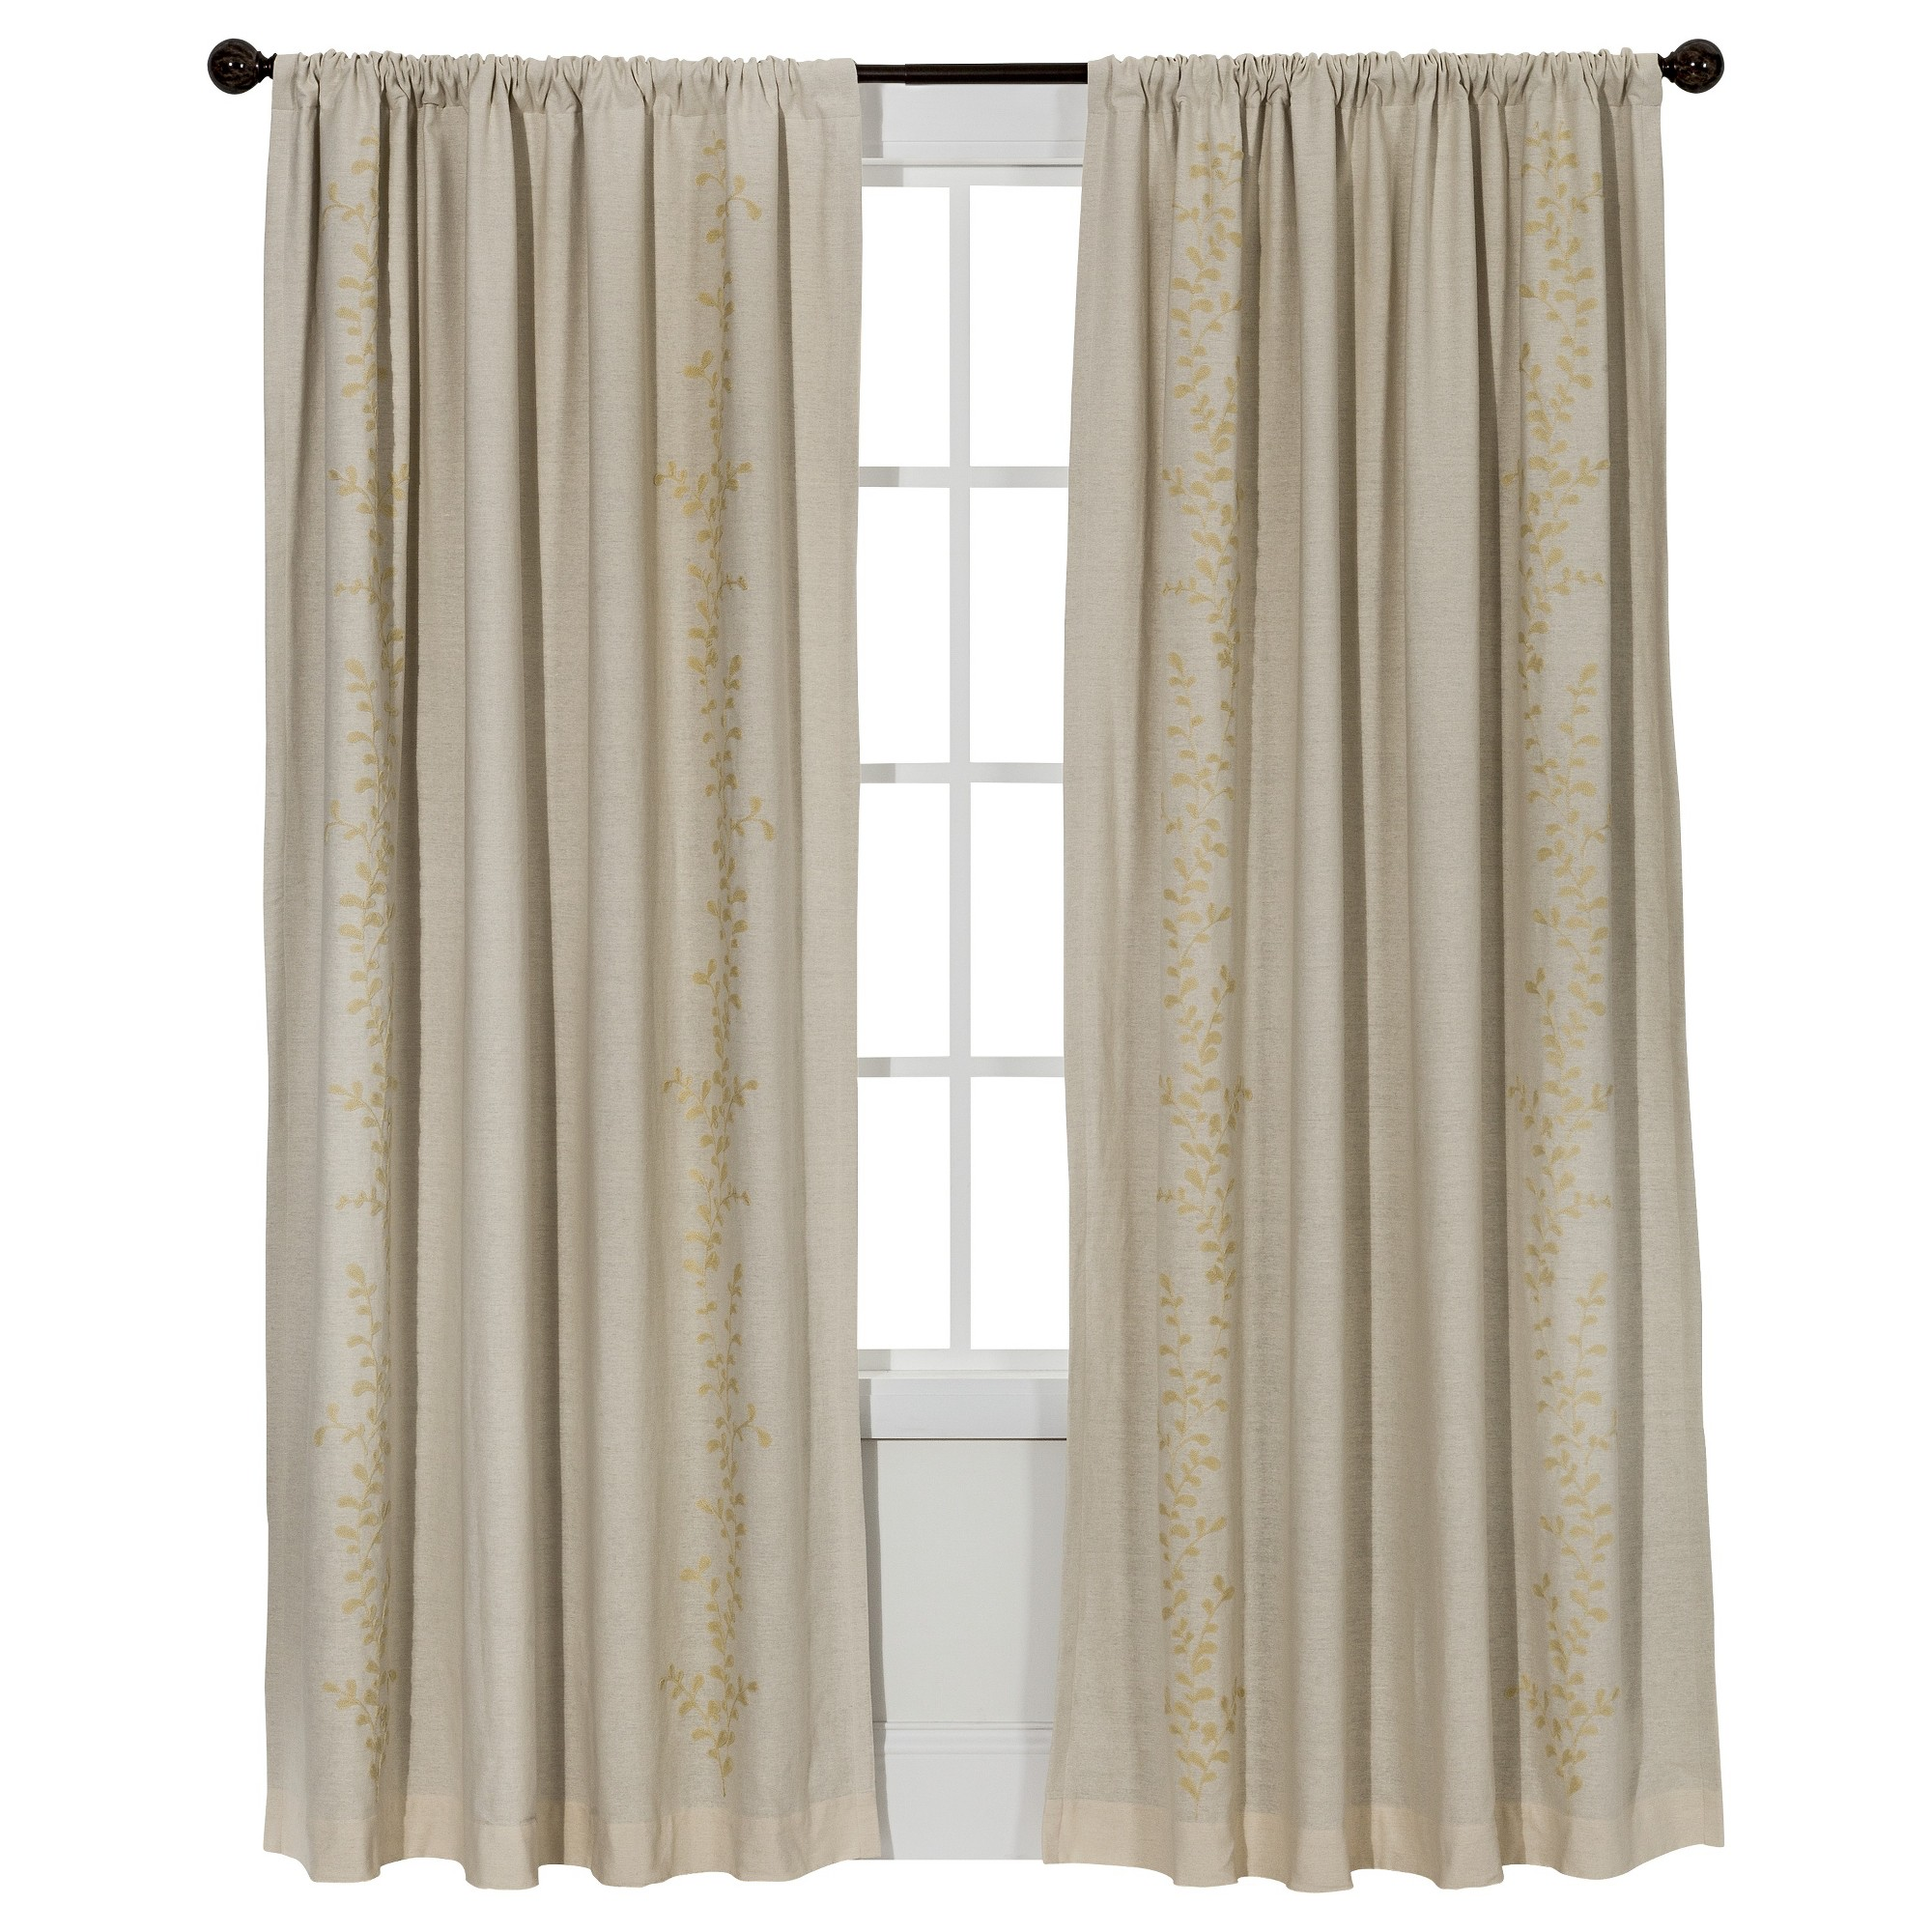 23 Charming Beige Living Room Design Ideas To Brighten Up: Embroidered Vine Light Blocking Curtain Panel Cream (54